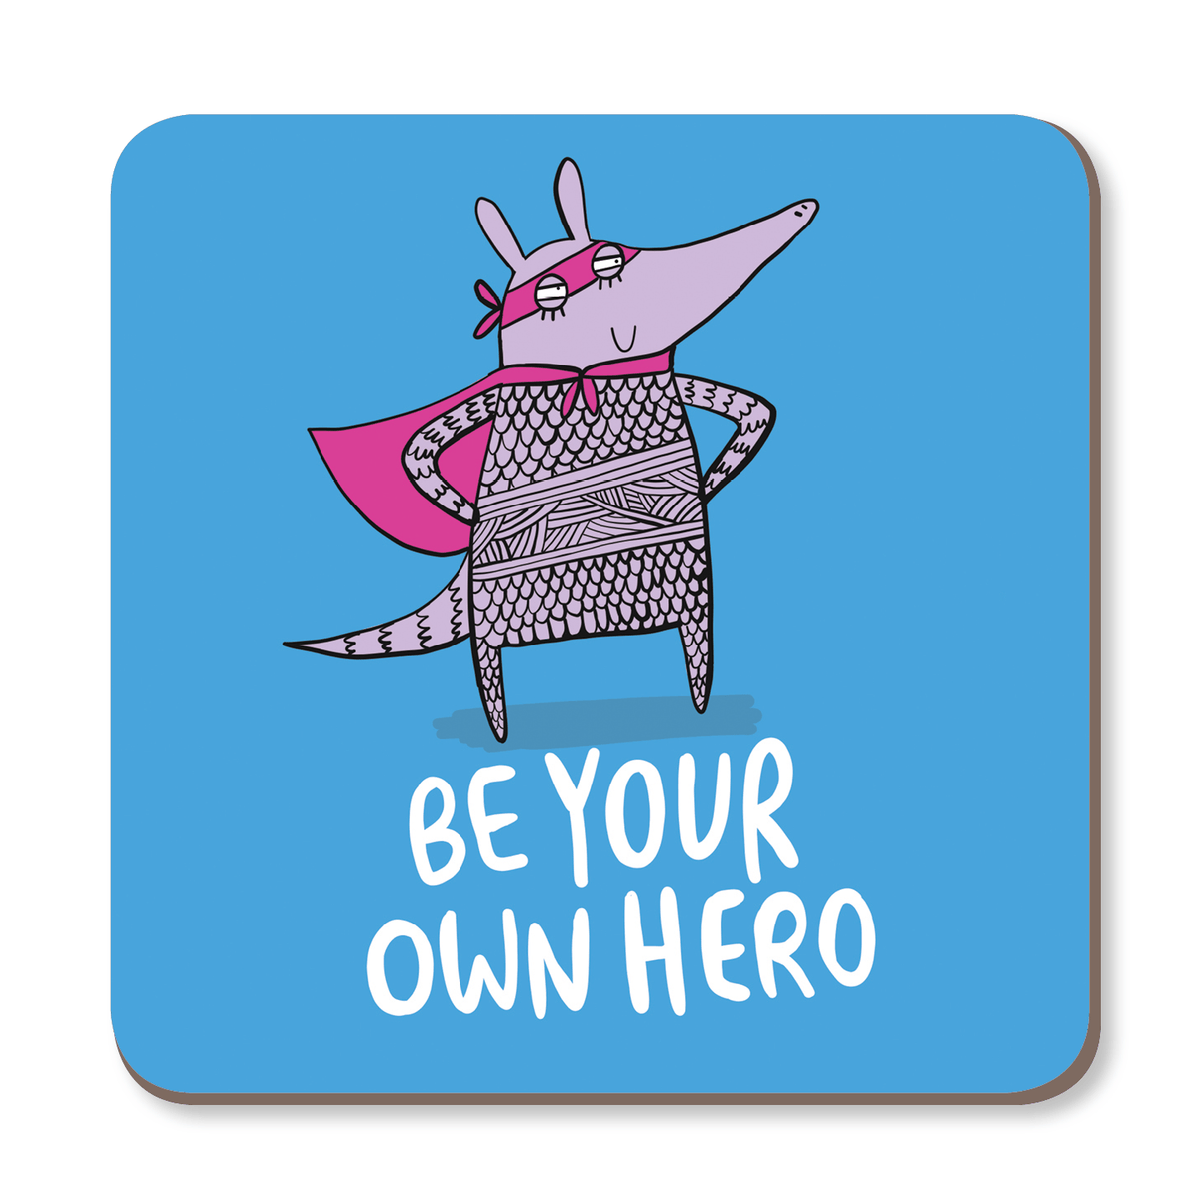 Be Your Own Hero Motivational Coaster by Katie Abey - Whale and Bird